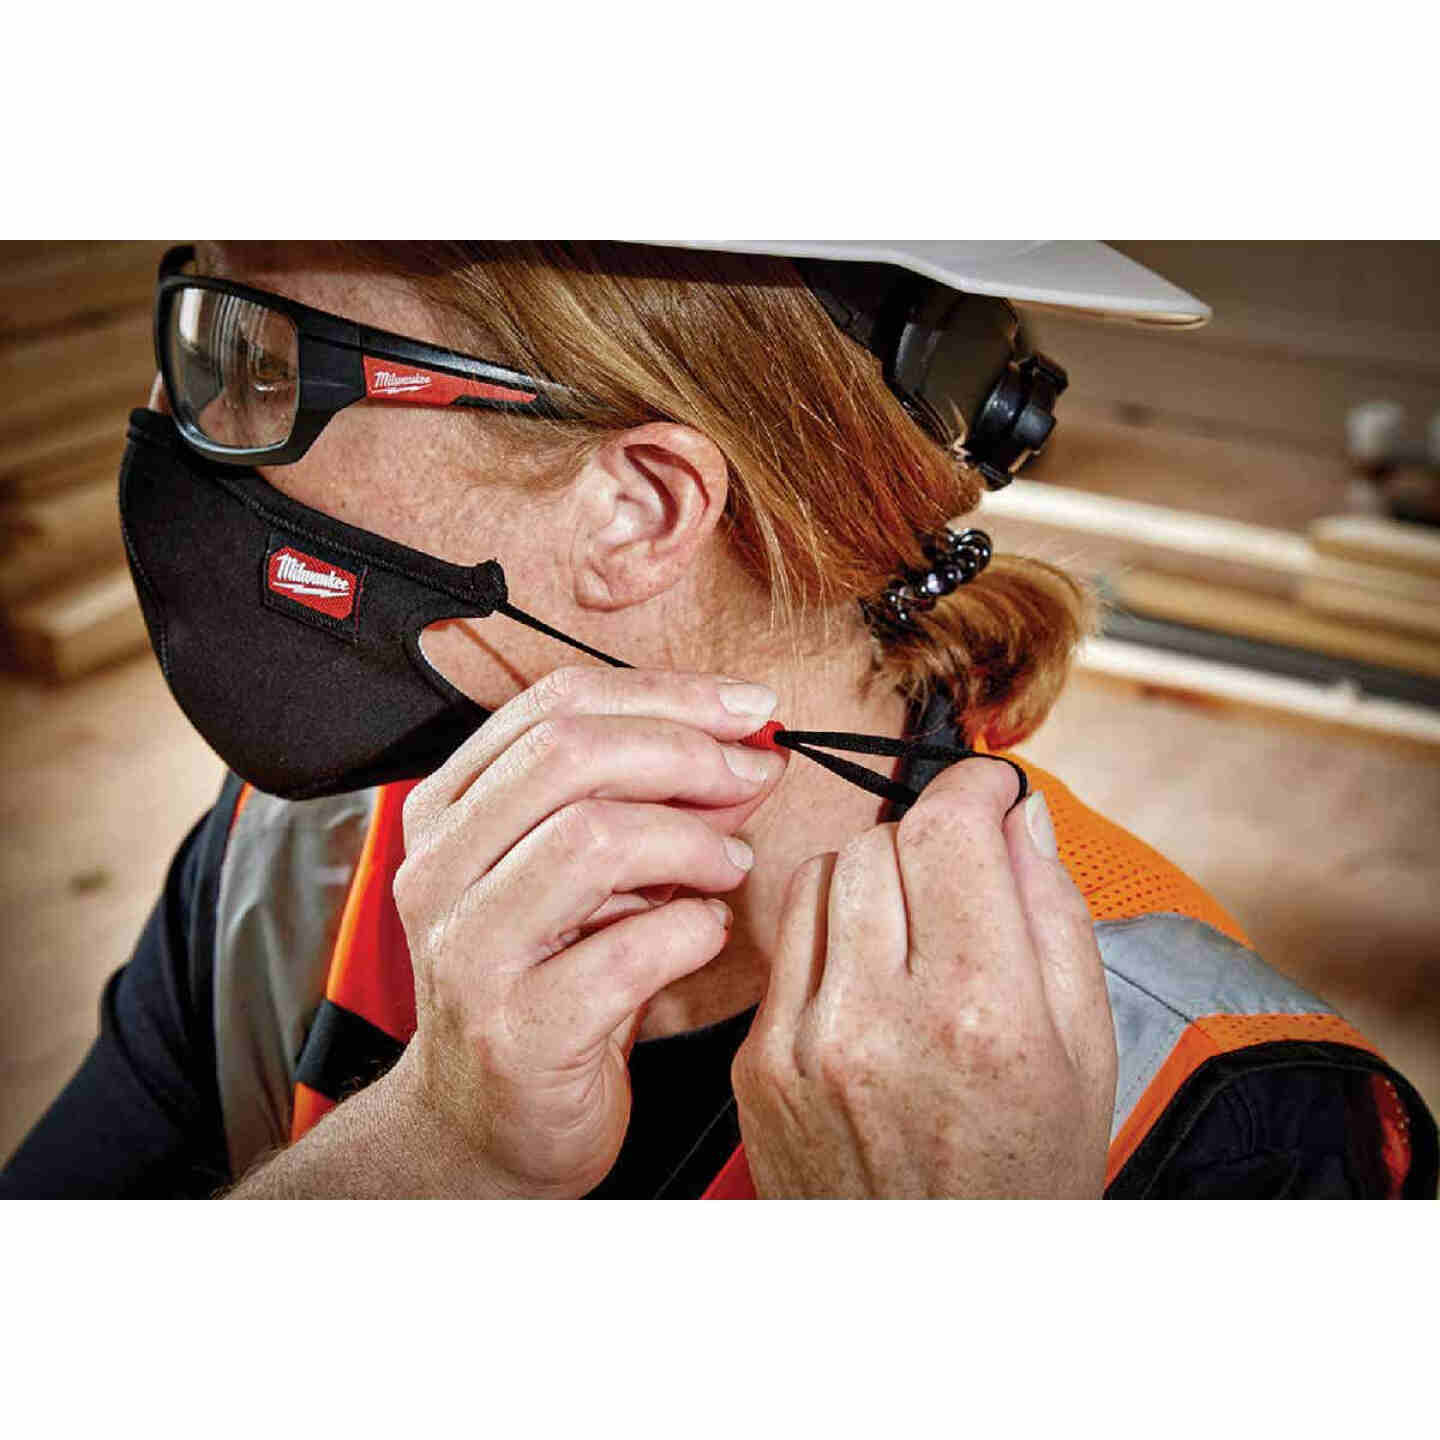 Milwaukee S/M 3-Layer Washable Performance Dust & Face Mask (3-Pack) Image 4